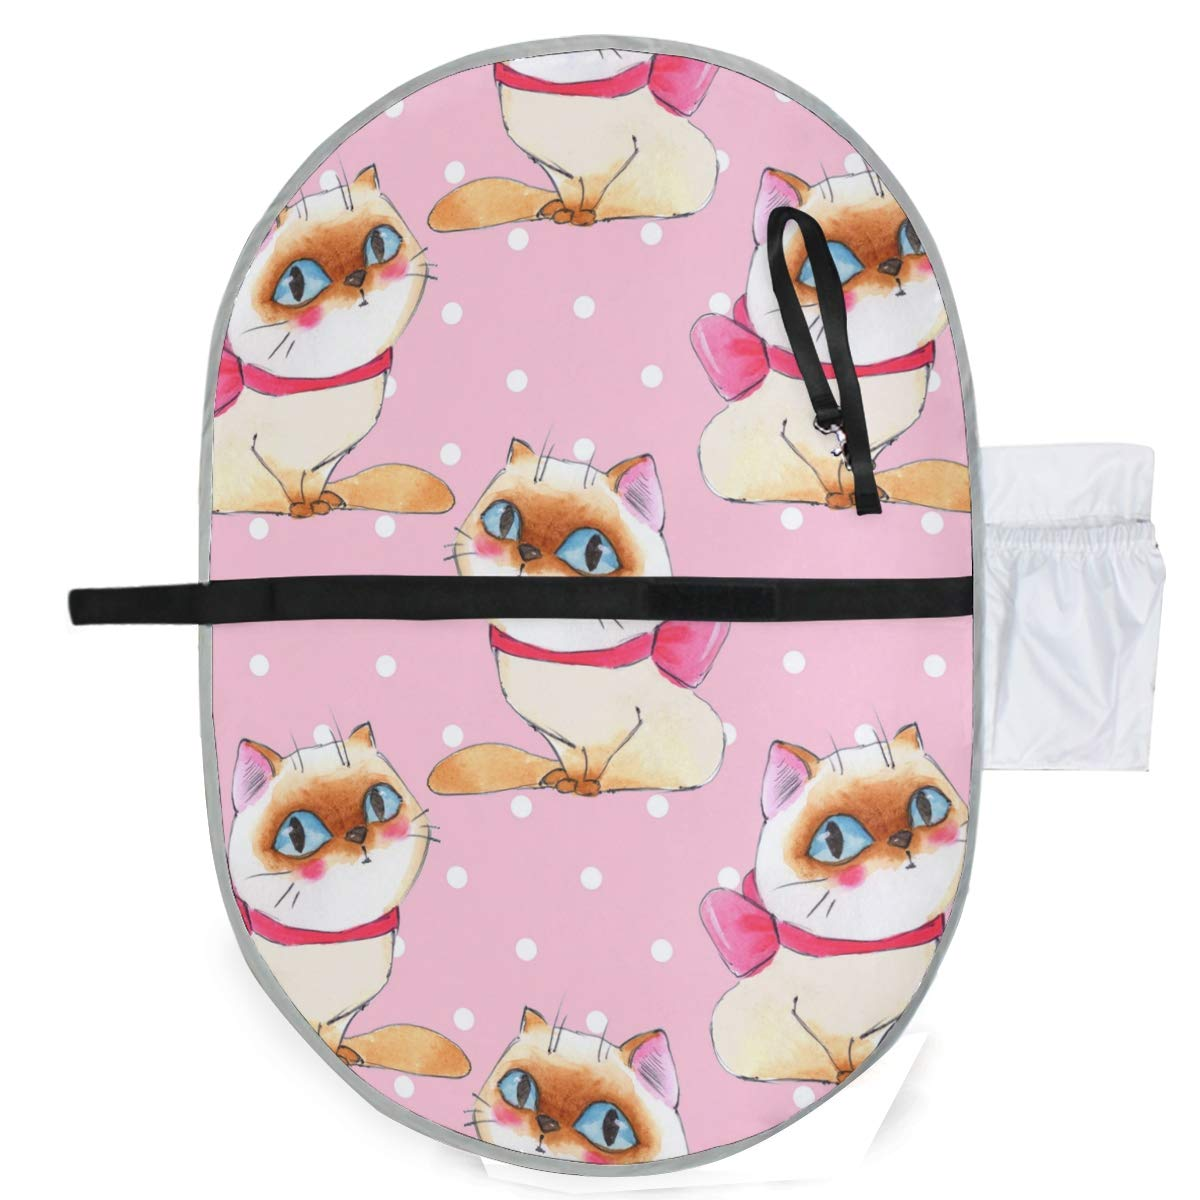 Waterproof Washable Baby Diaper Changing Pad Mat Watercolor Cats Portable and Foldable Infant Large Nappy Mat 27x20 inch